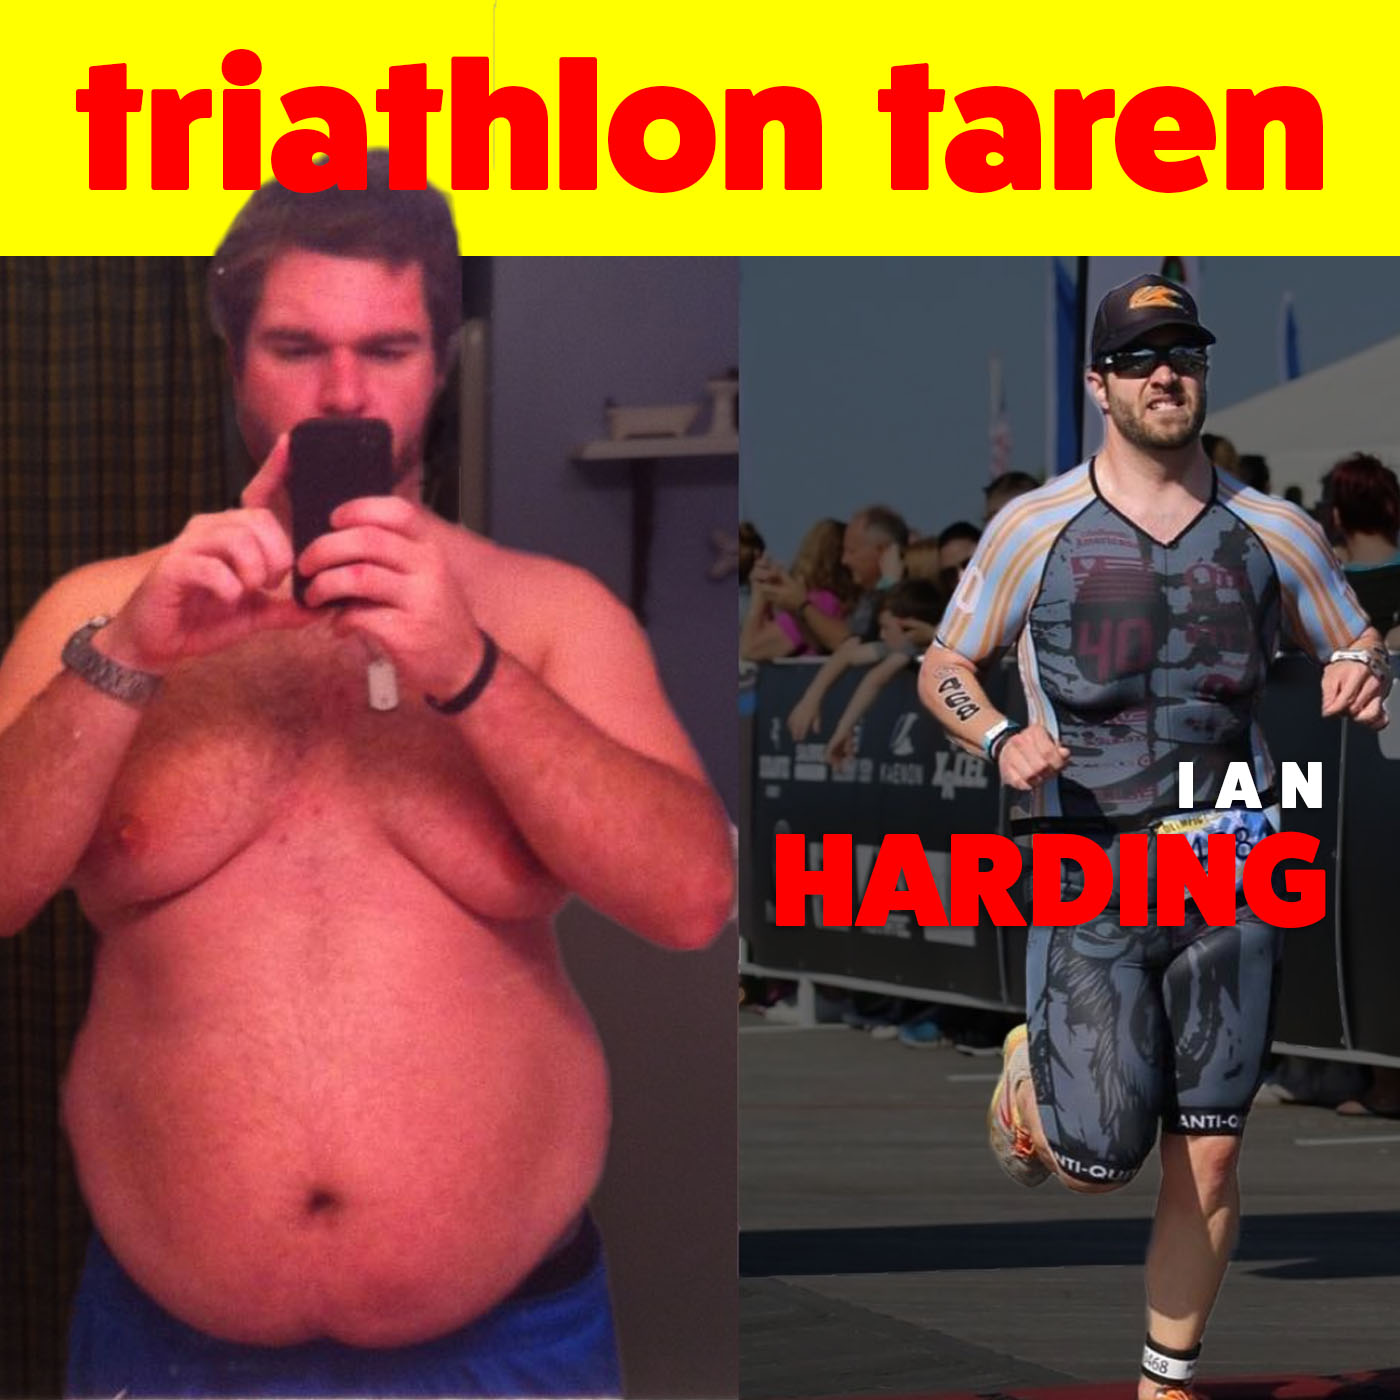 Obese and bullied, triathlete Ian Harding lost 100 lbs and helps others get healthy